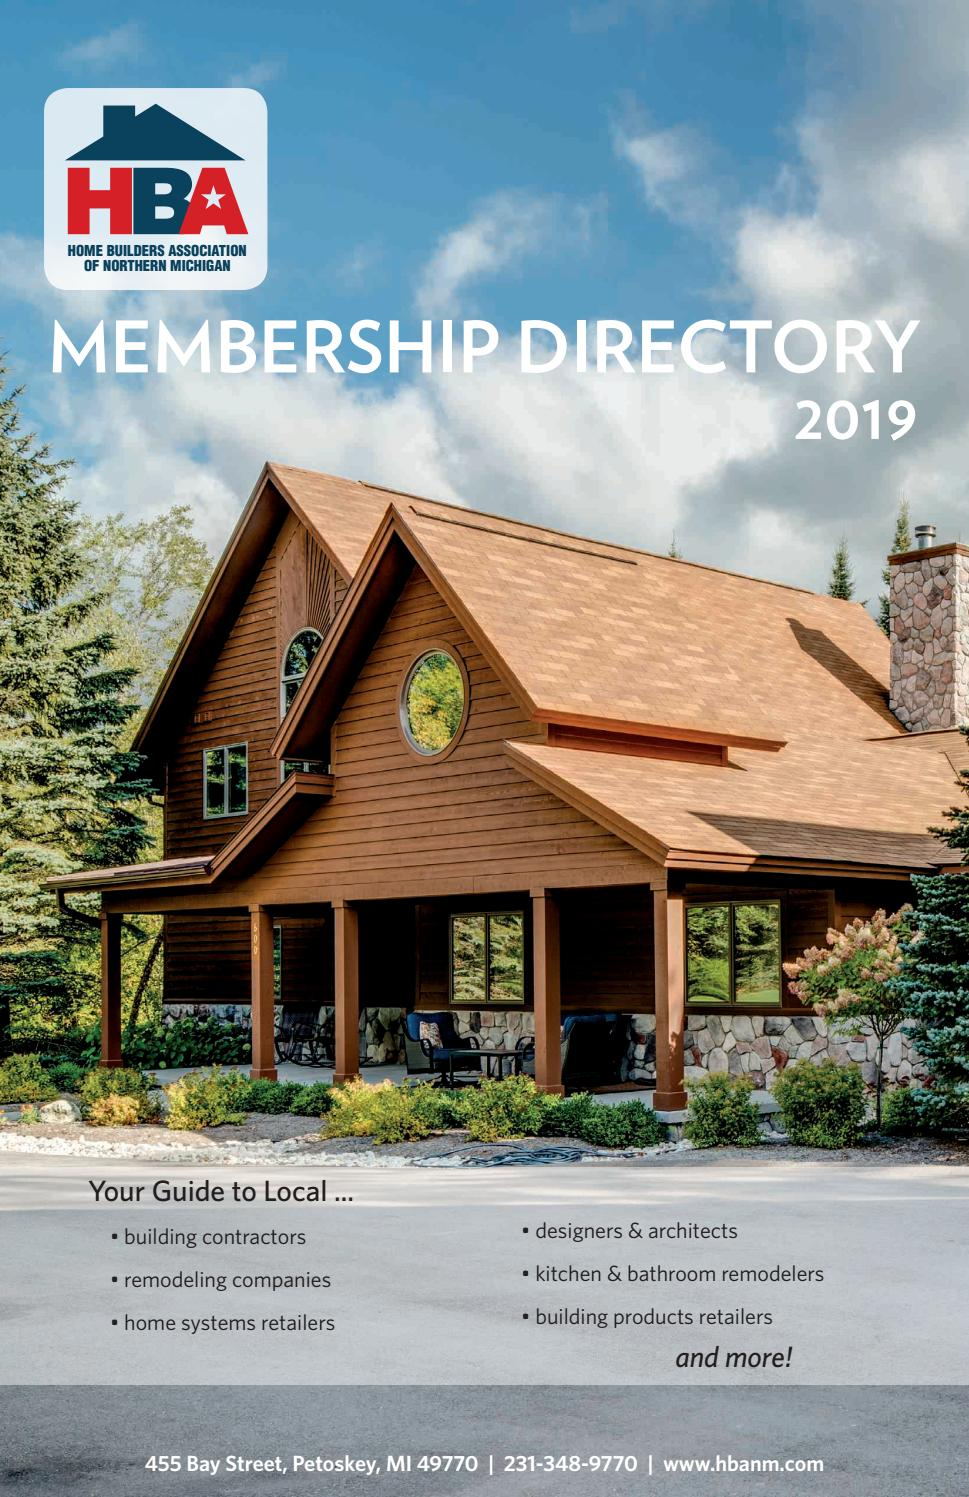 Home Builders Ociation Of Northern Michigan 2019